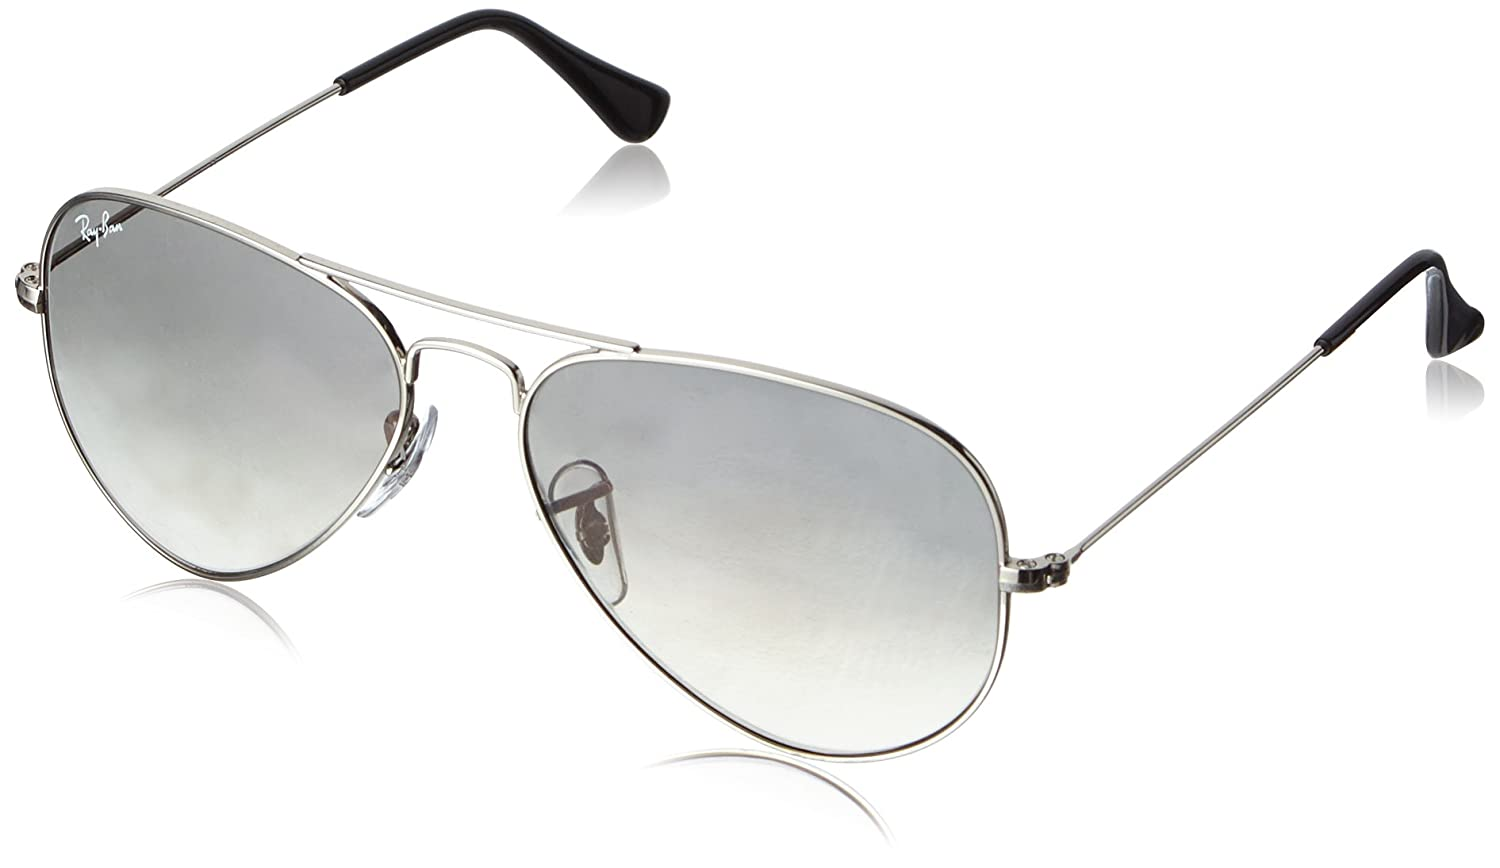 ray ban rb3025 iconic black glass  amazon: ray ban 0rb3025 aviator metal non polarized sunglasses, silver/ crystal grey gradient, 55mm: ray ban: clothing